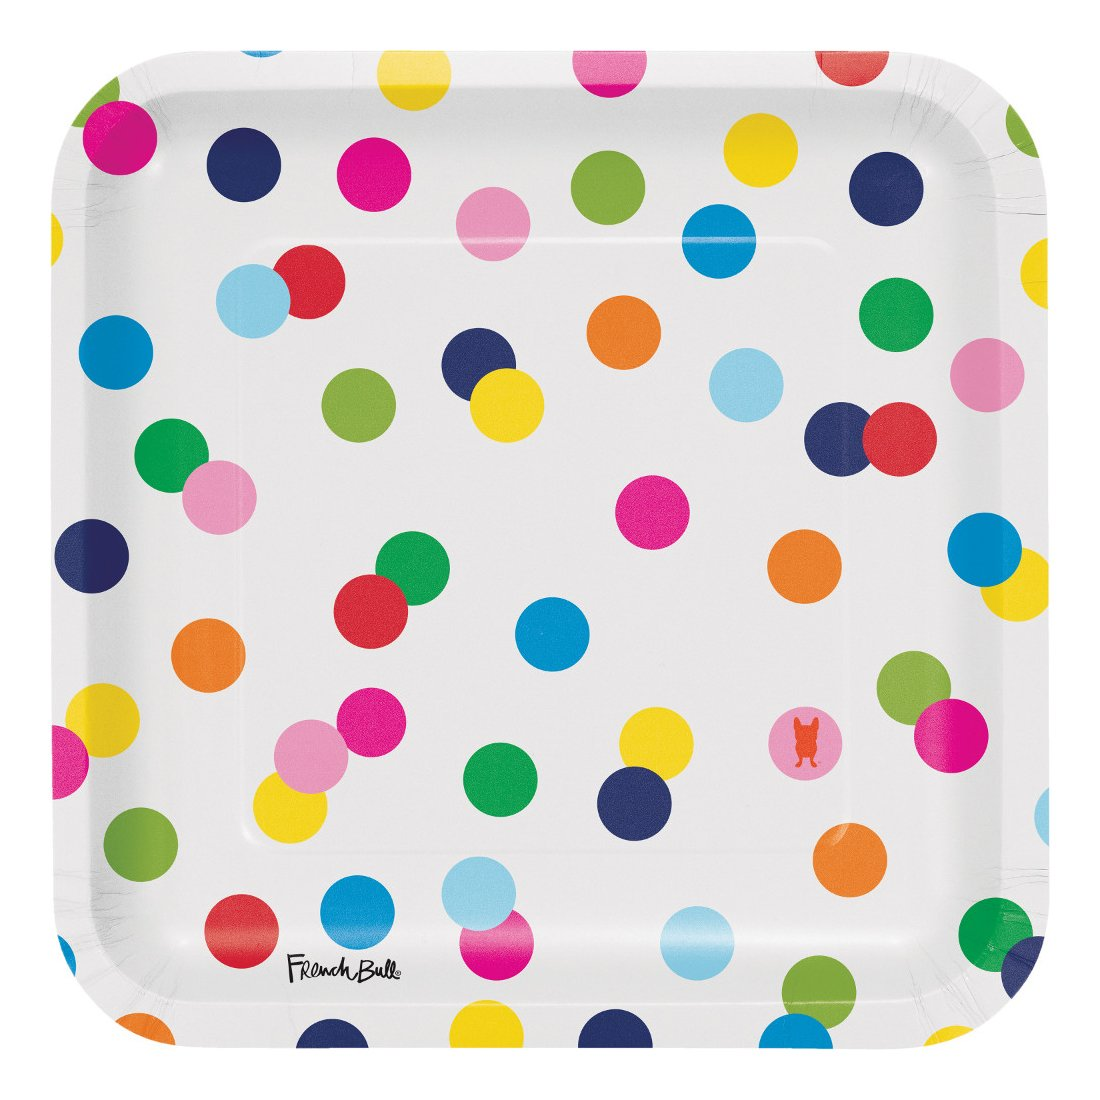 Creative Converting 322129 Party Supplies French Bull Dots-9-Inch Square Dinner Plate, 10-Count, Dinner, Birthday Dots by Creative Converting